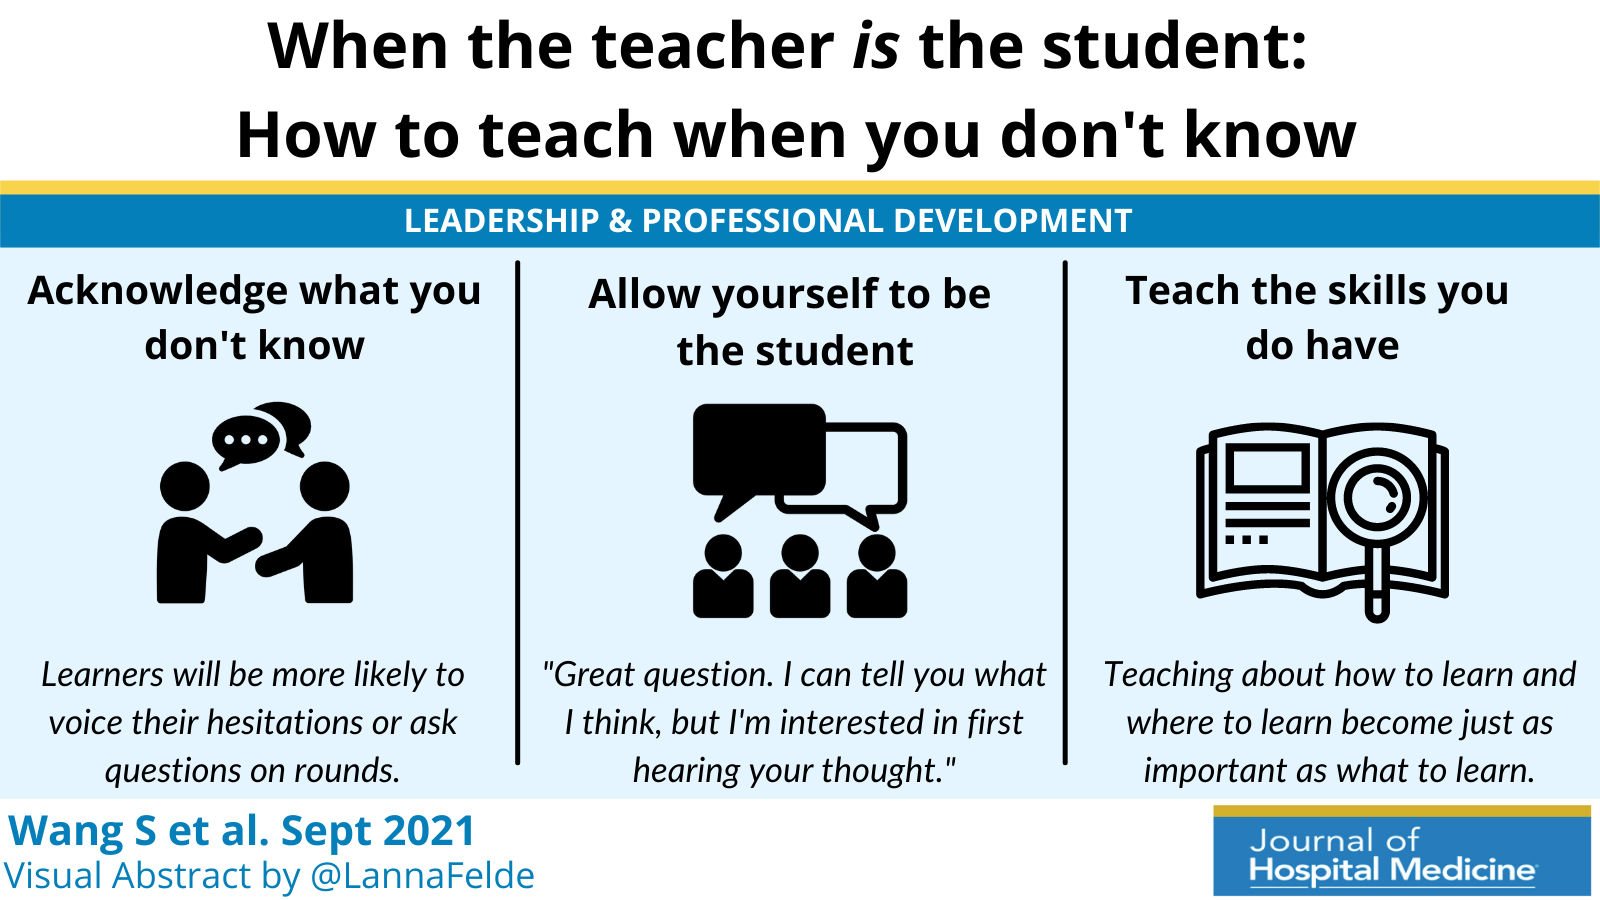 Leadership & Professional Development: How to Teach When You Don't Know